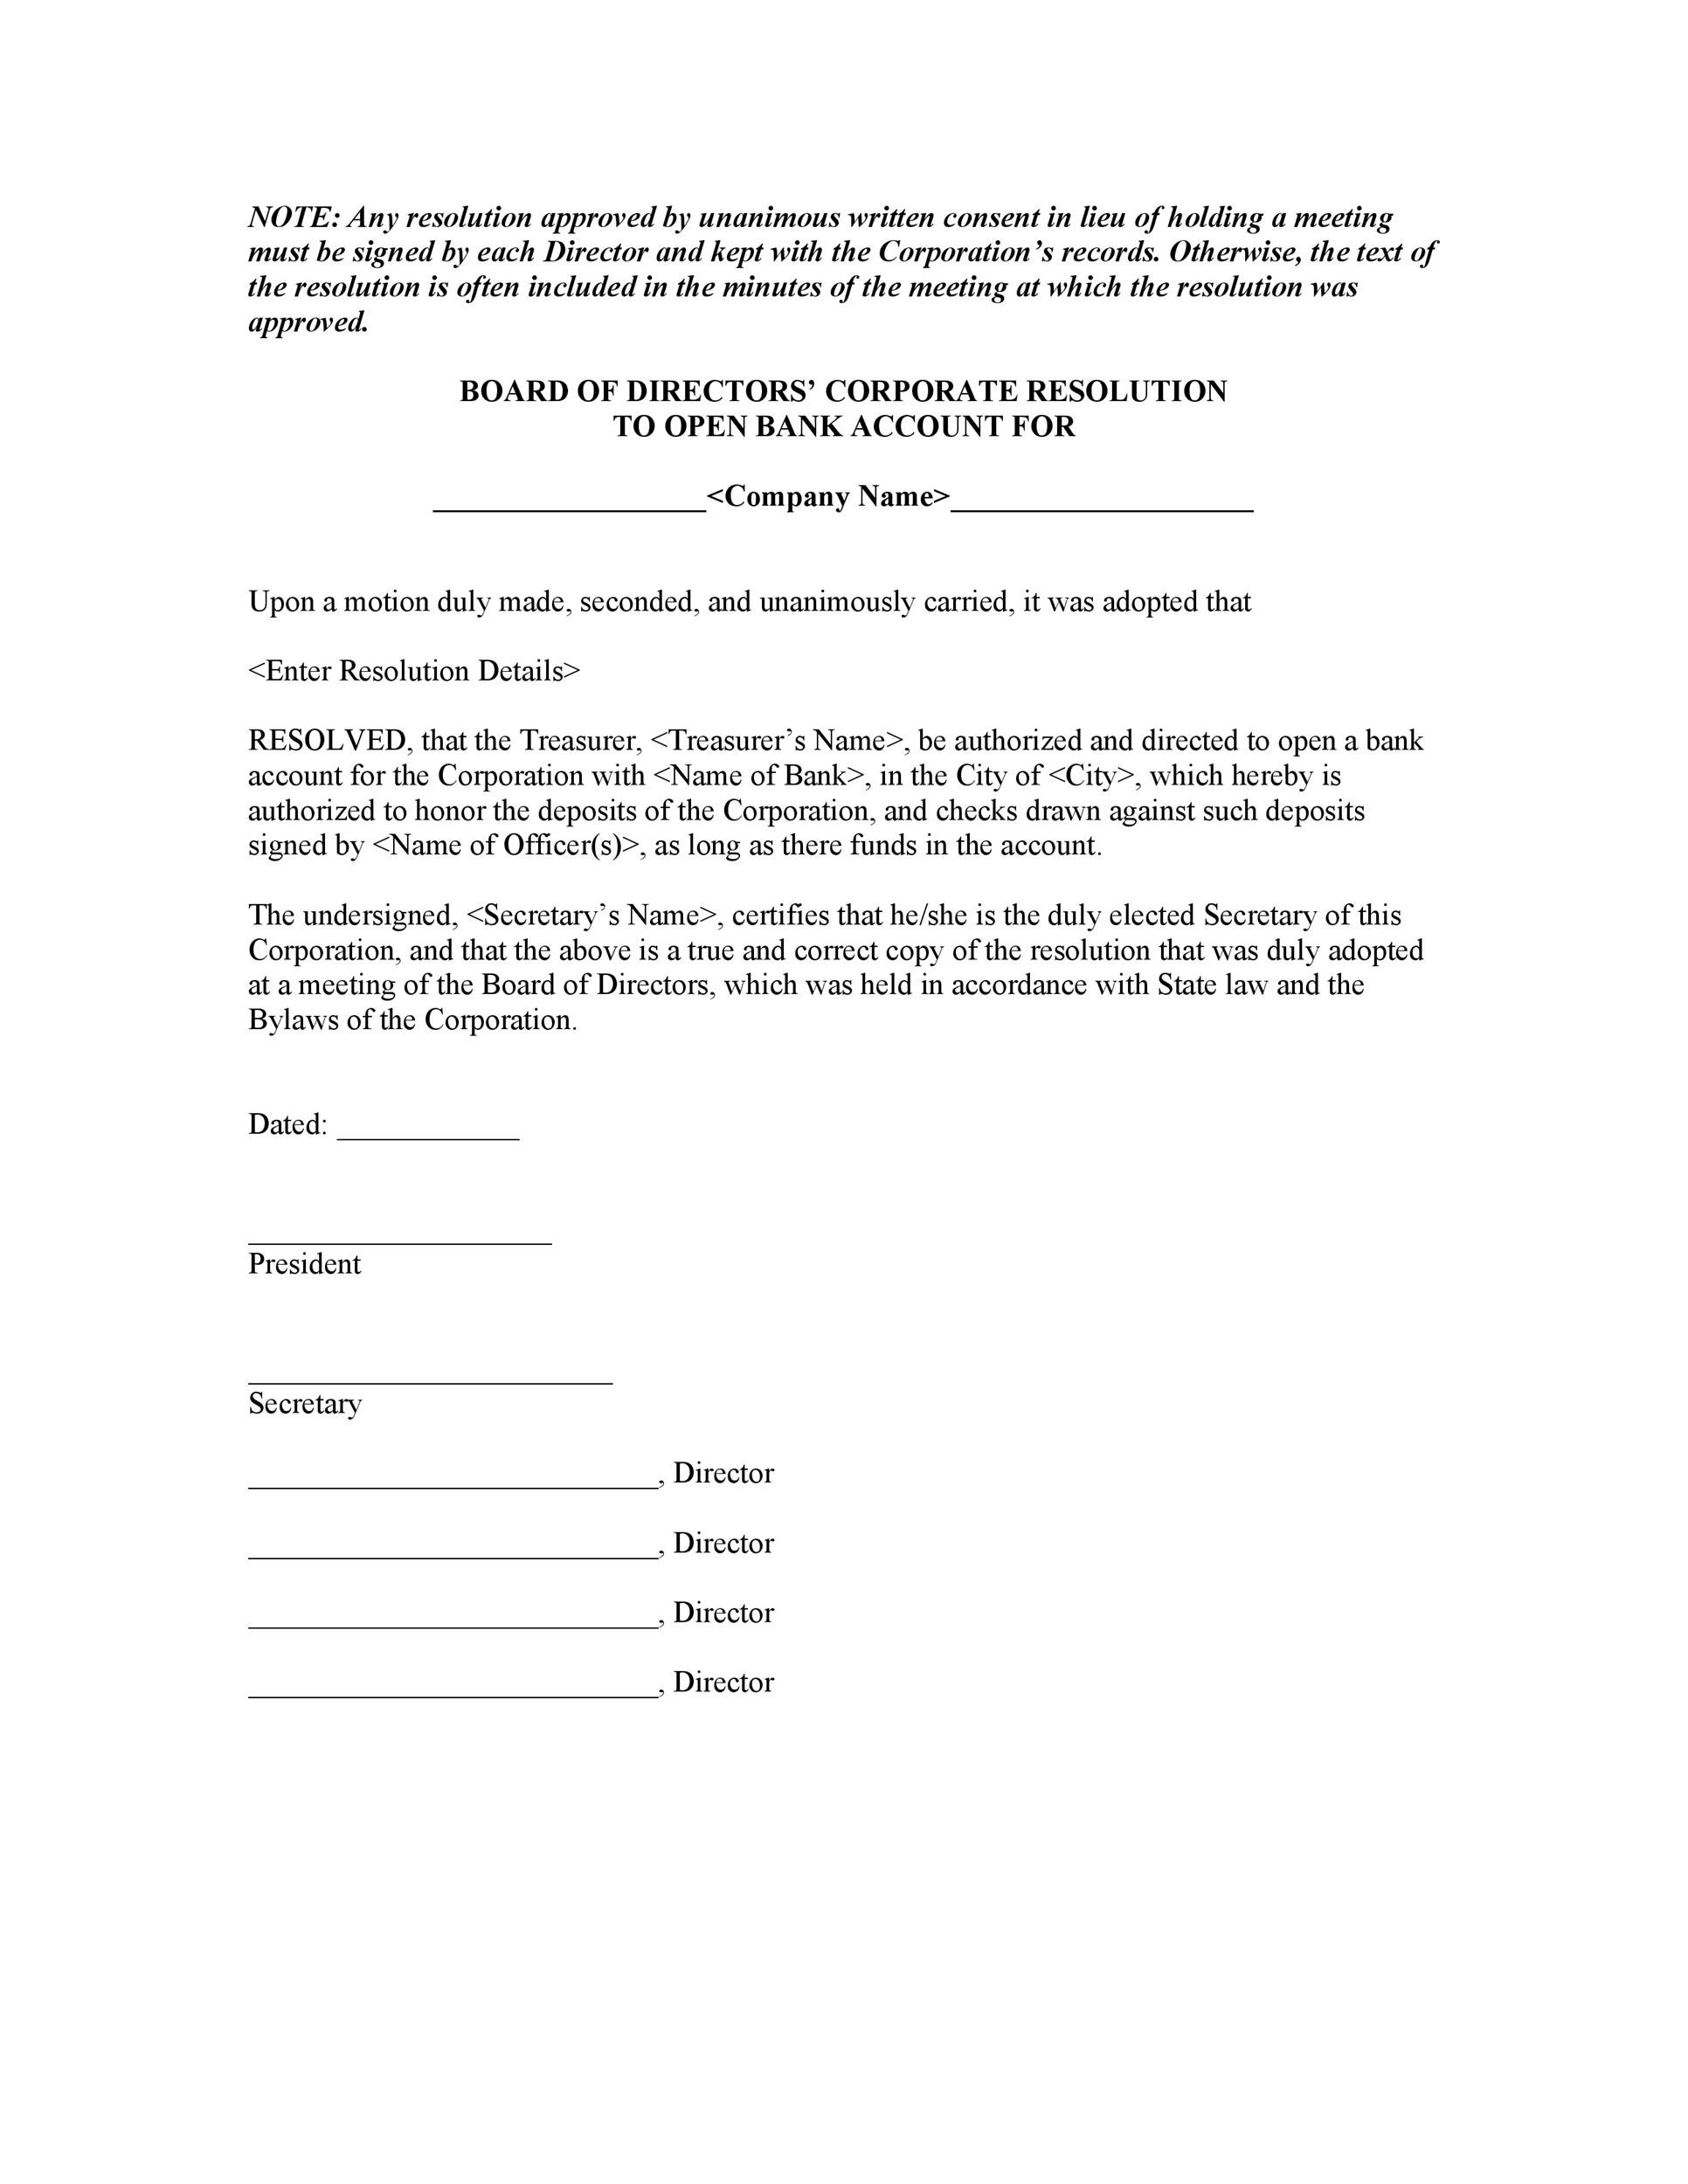 Free Corporate Resolution Form 25